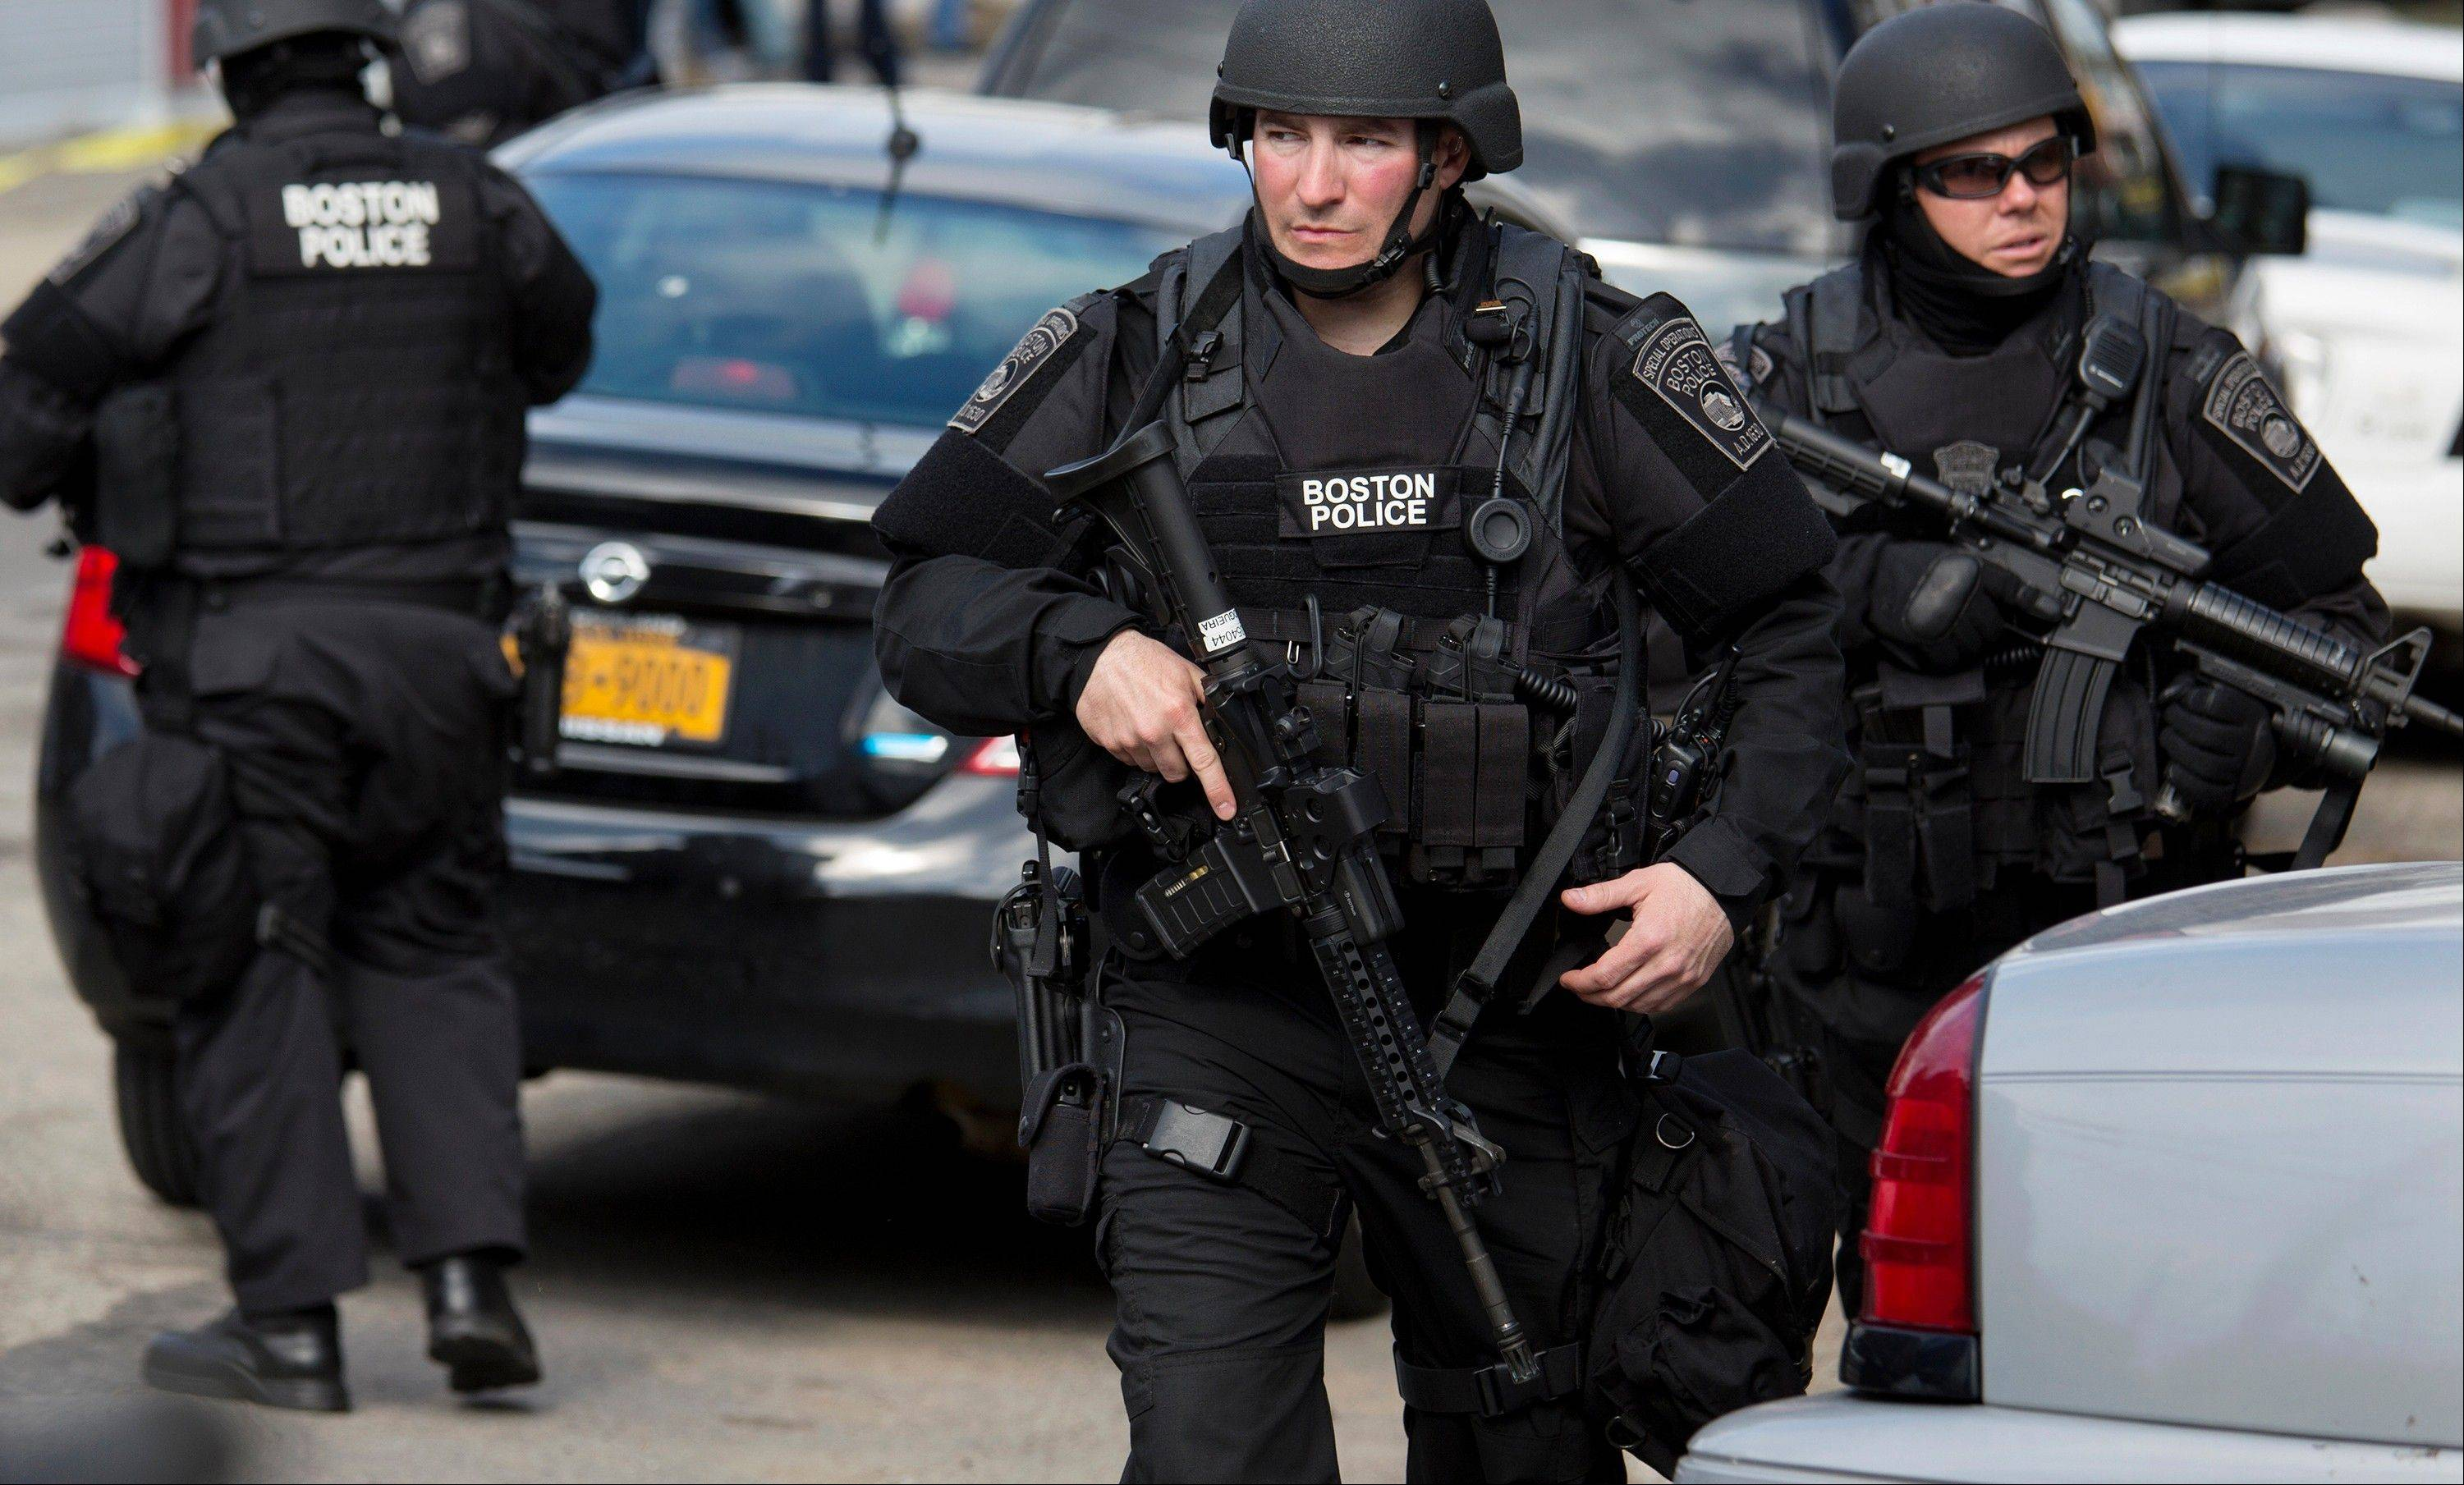 Heavily armed police continue to patrol the neighborhoods of Watertown, Mass. Friday, April 19, 2013, as they continue a massive search for one of two suspects in the Boston Marathon bombing. A second suspect died in the early morning hours after an encounter with law enforcement.